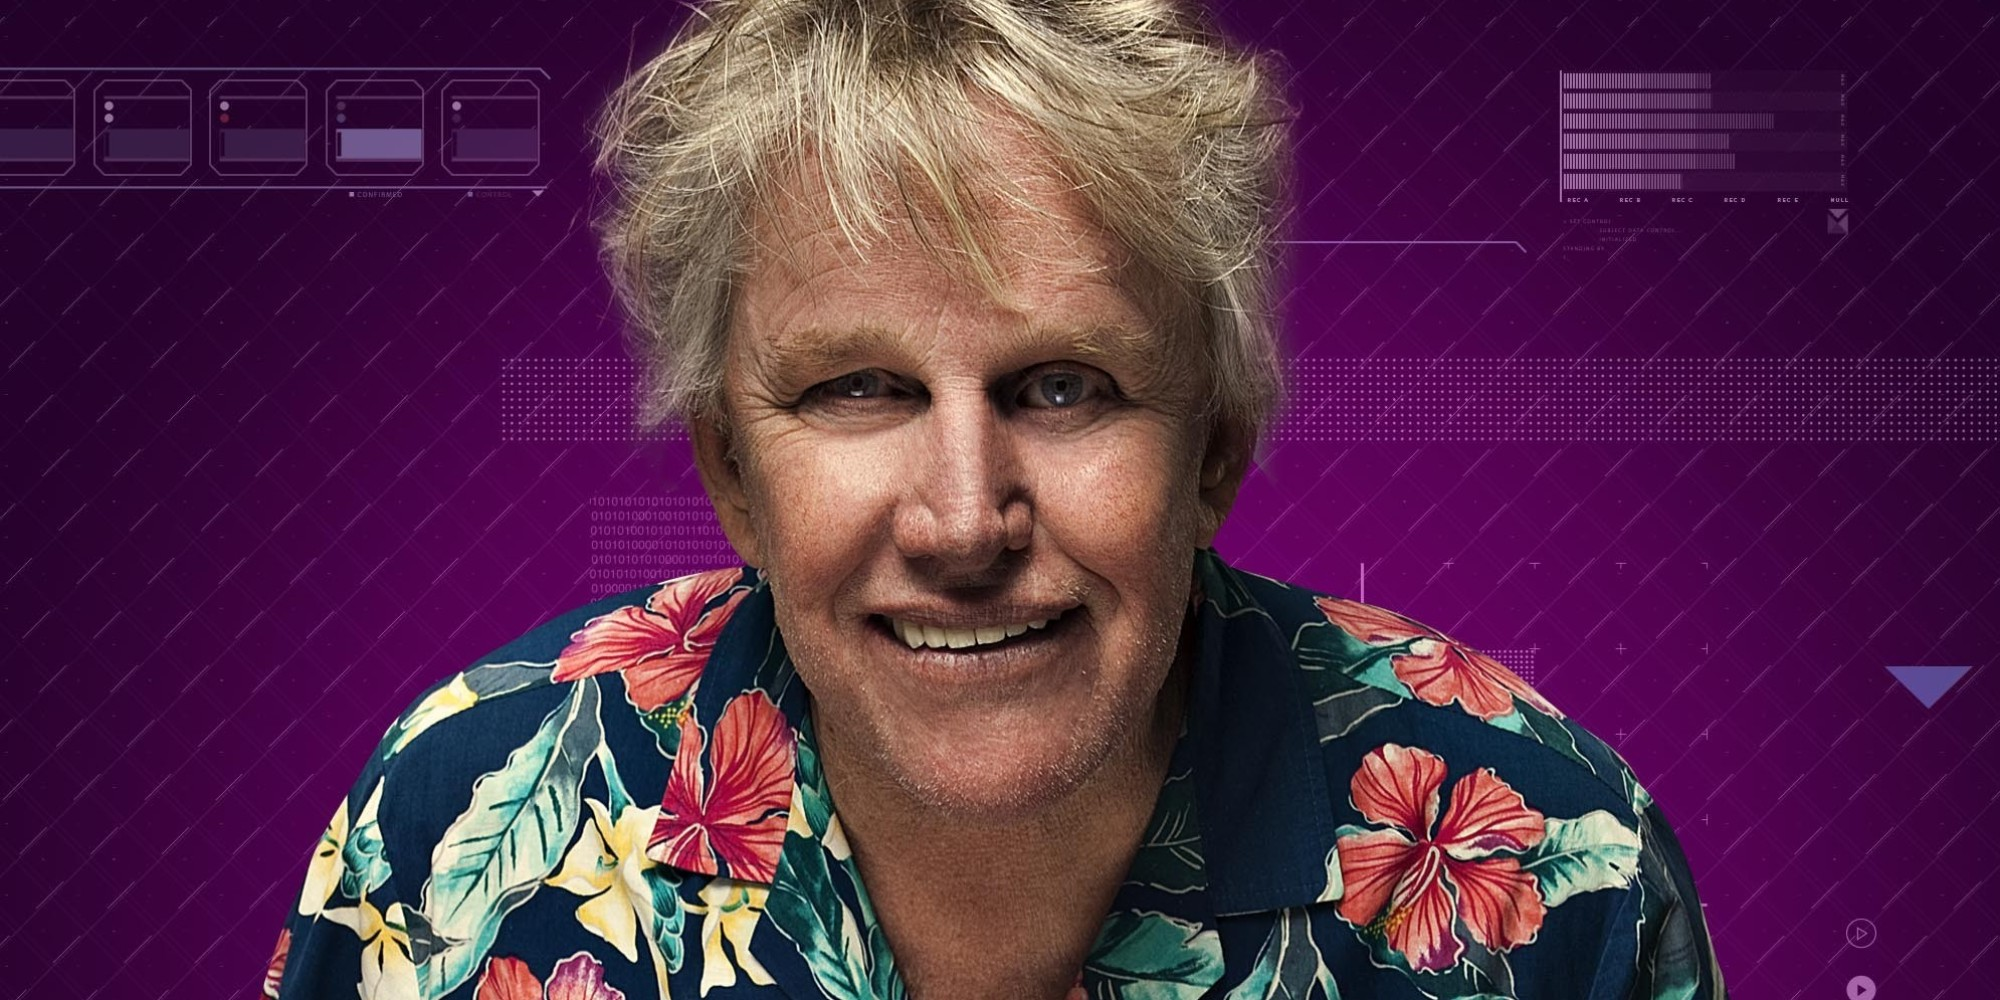 Gary Busey Widescreen for desktop